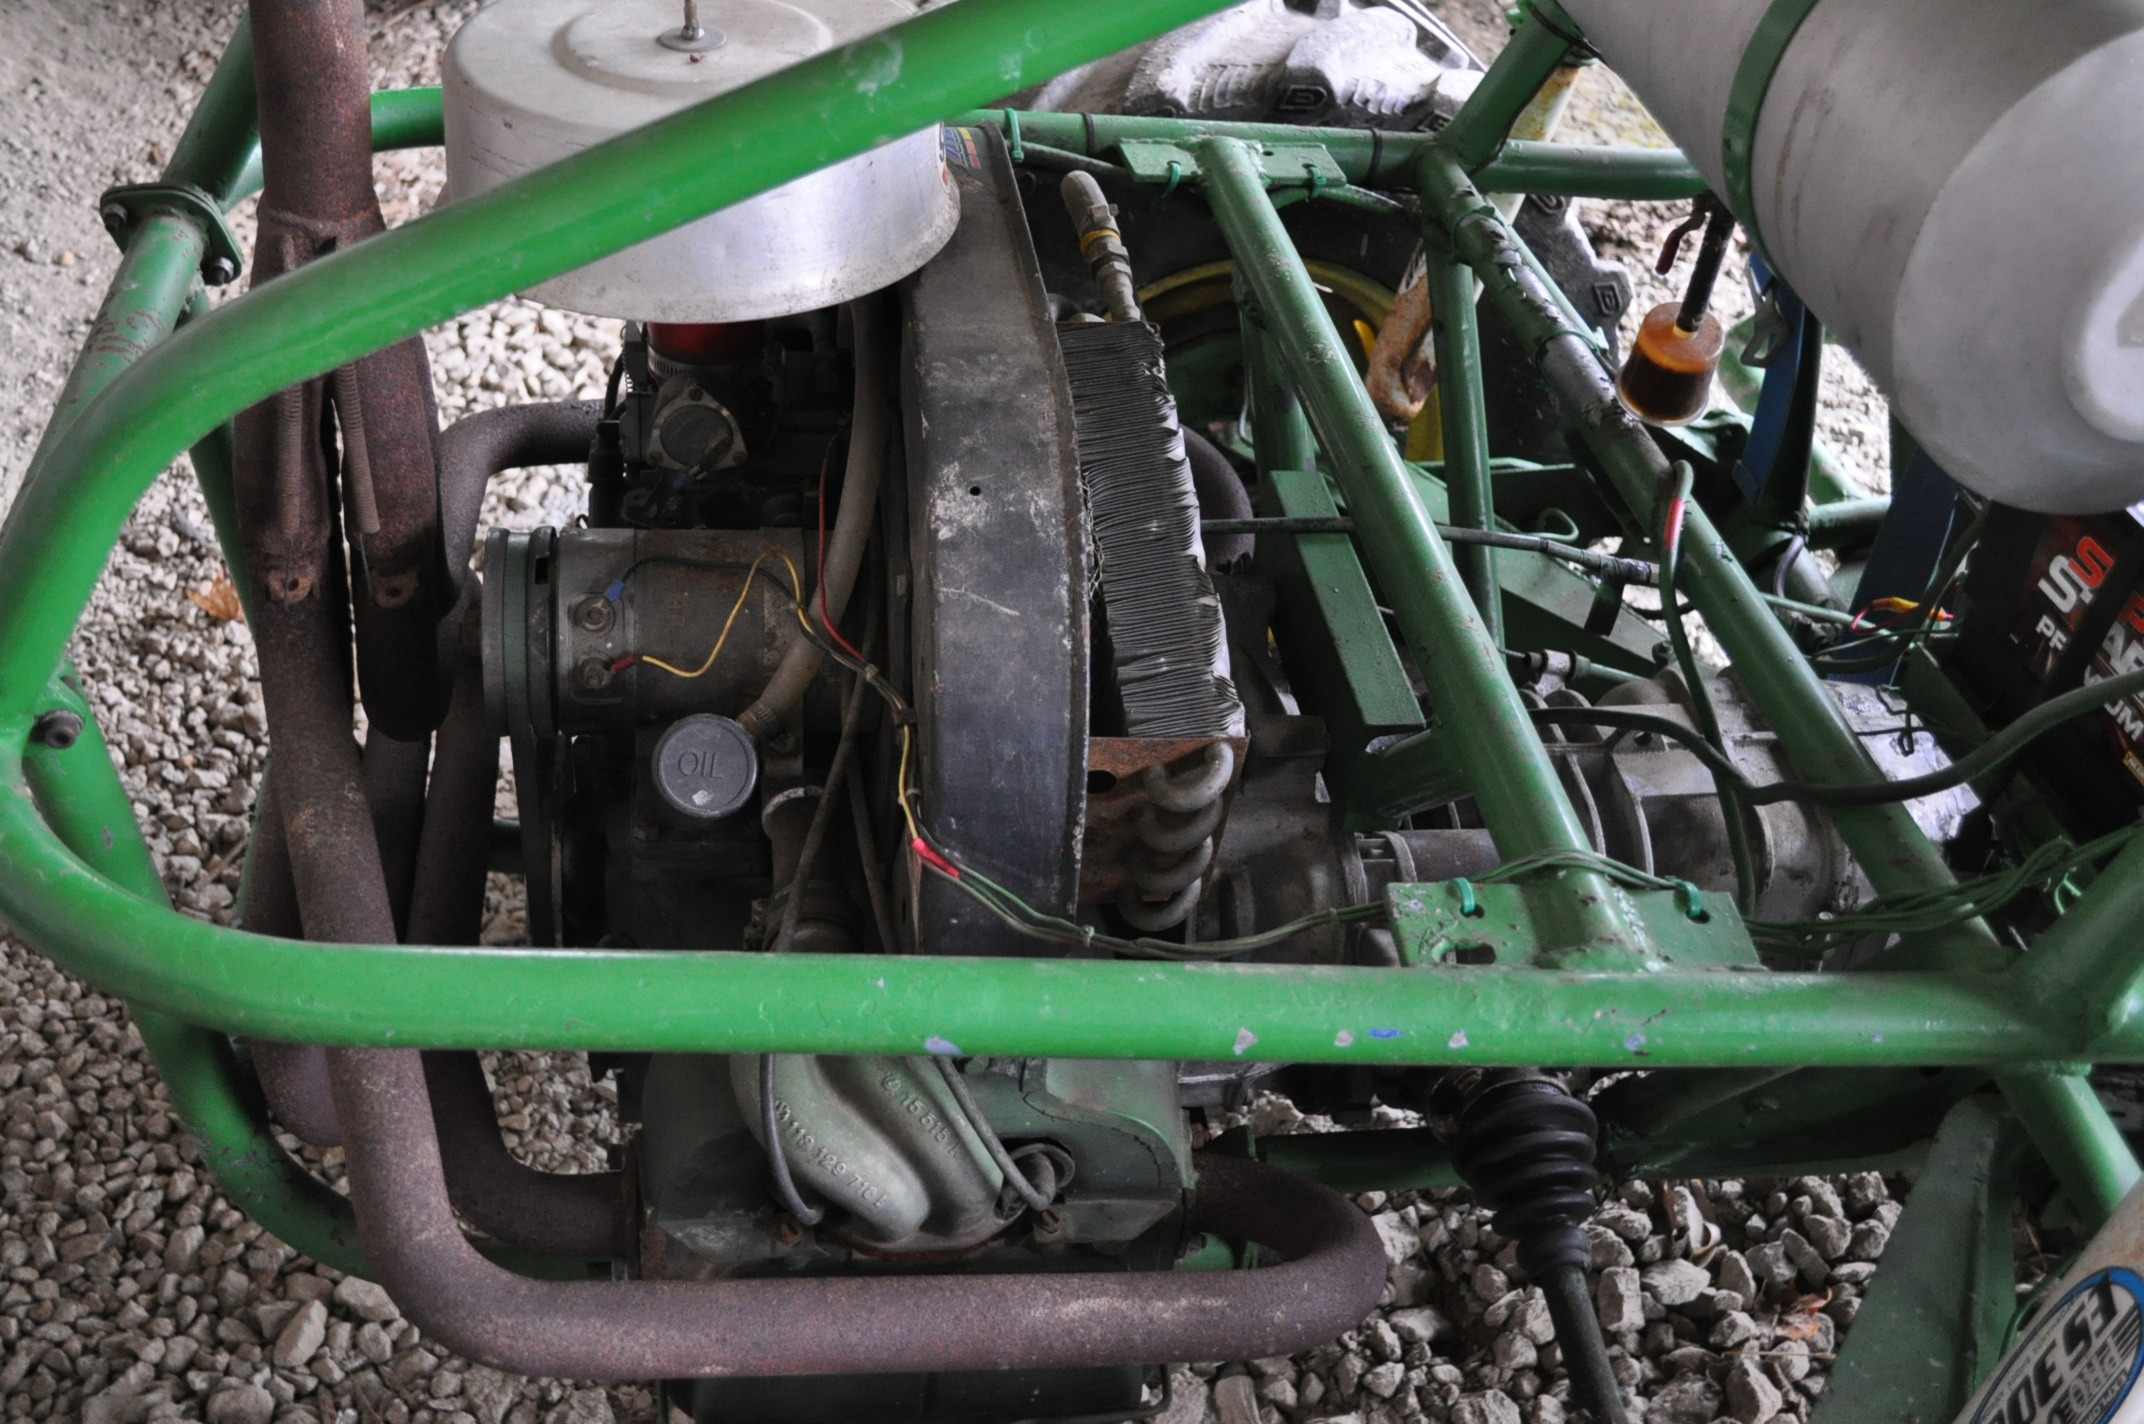 Dune buggy, VW air-cooled gas engine, 31 x 15.5-15 rear, 6.70-15LT front - Image 5 of 10